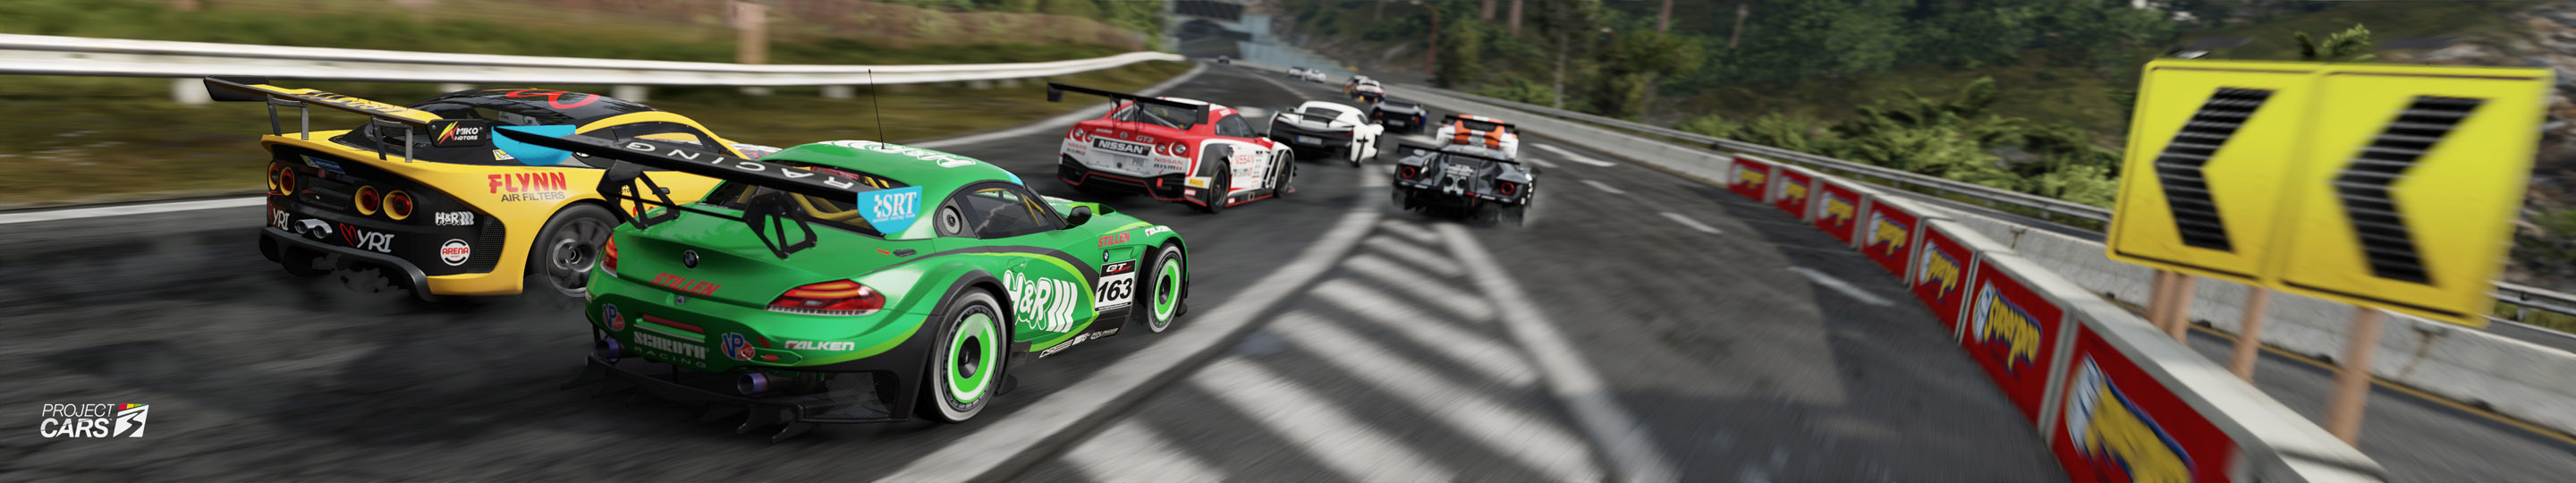 2 PROJECT CARS 3 BMW Z4 GT3 at CALI HIGHWAY REVERSE copy.jpg